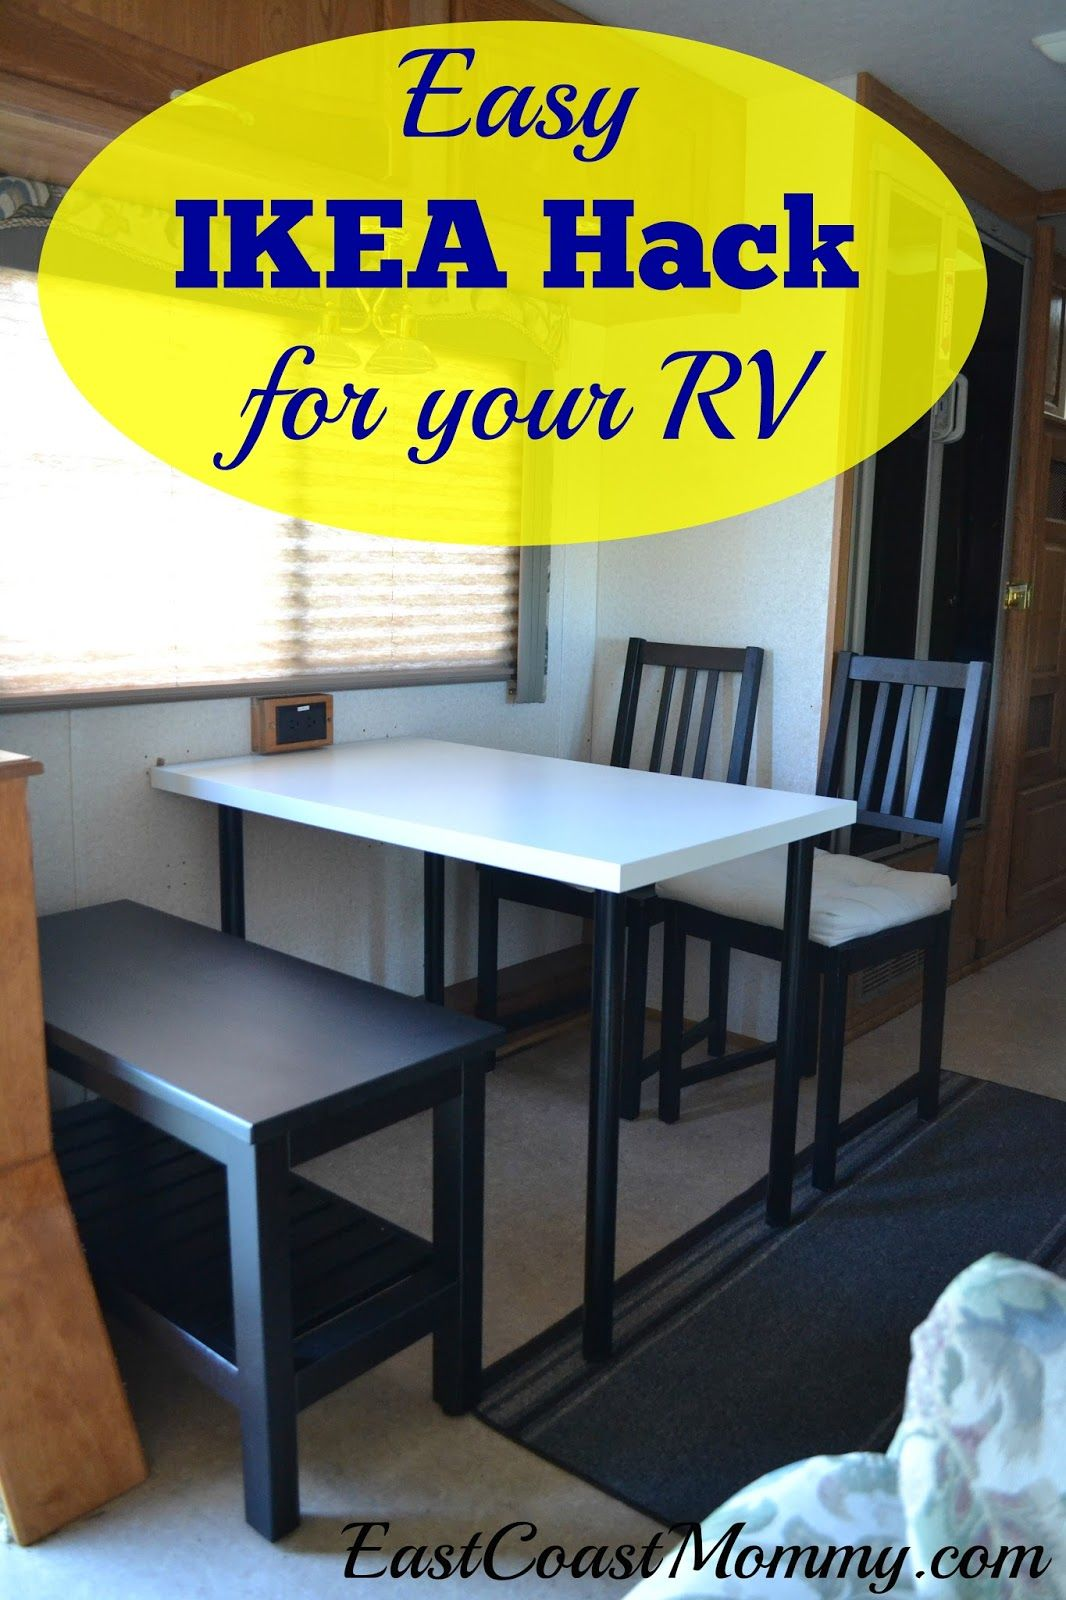 Inexpensive Basement Finishing Ideas Rv Ikea Hack | Camping/ Trailer | Remodeled Campers, Diy